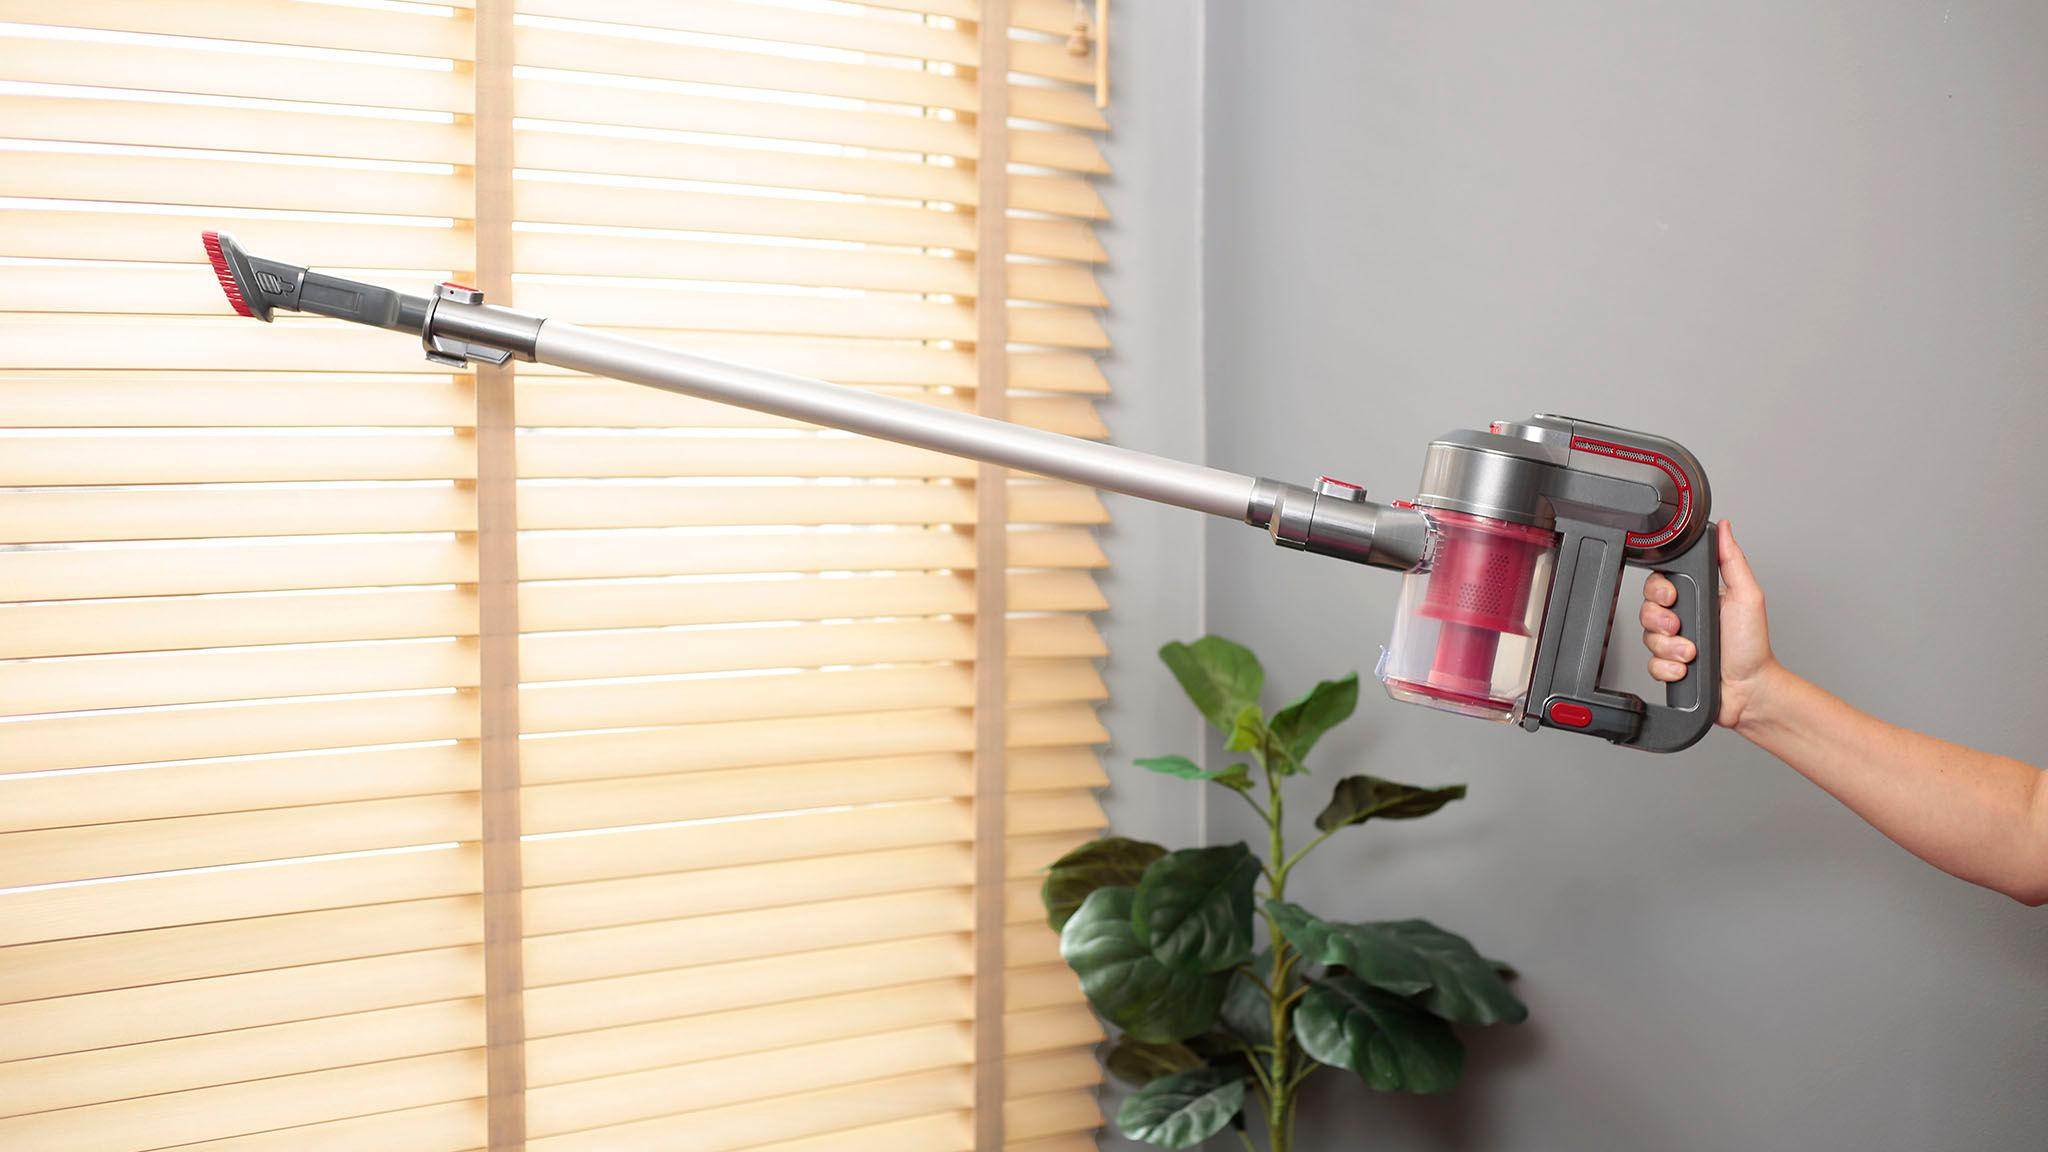 This hands-free vacuum will seriously simplify your life